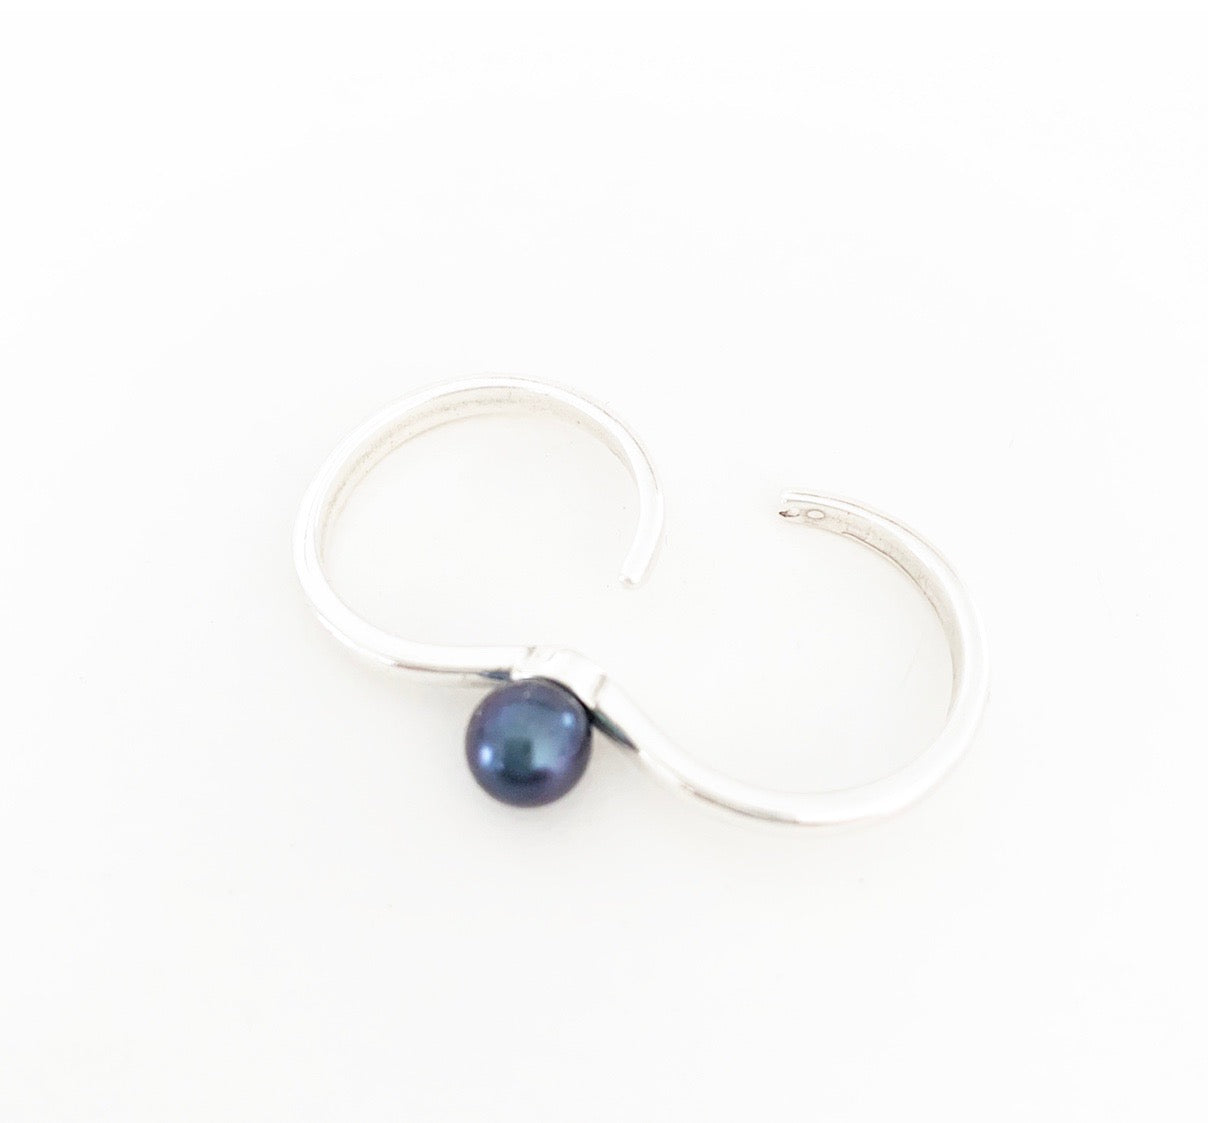 Heather Matjasic ohm jewelry shop sterling silver ring black pearl naples florida